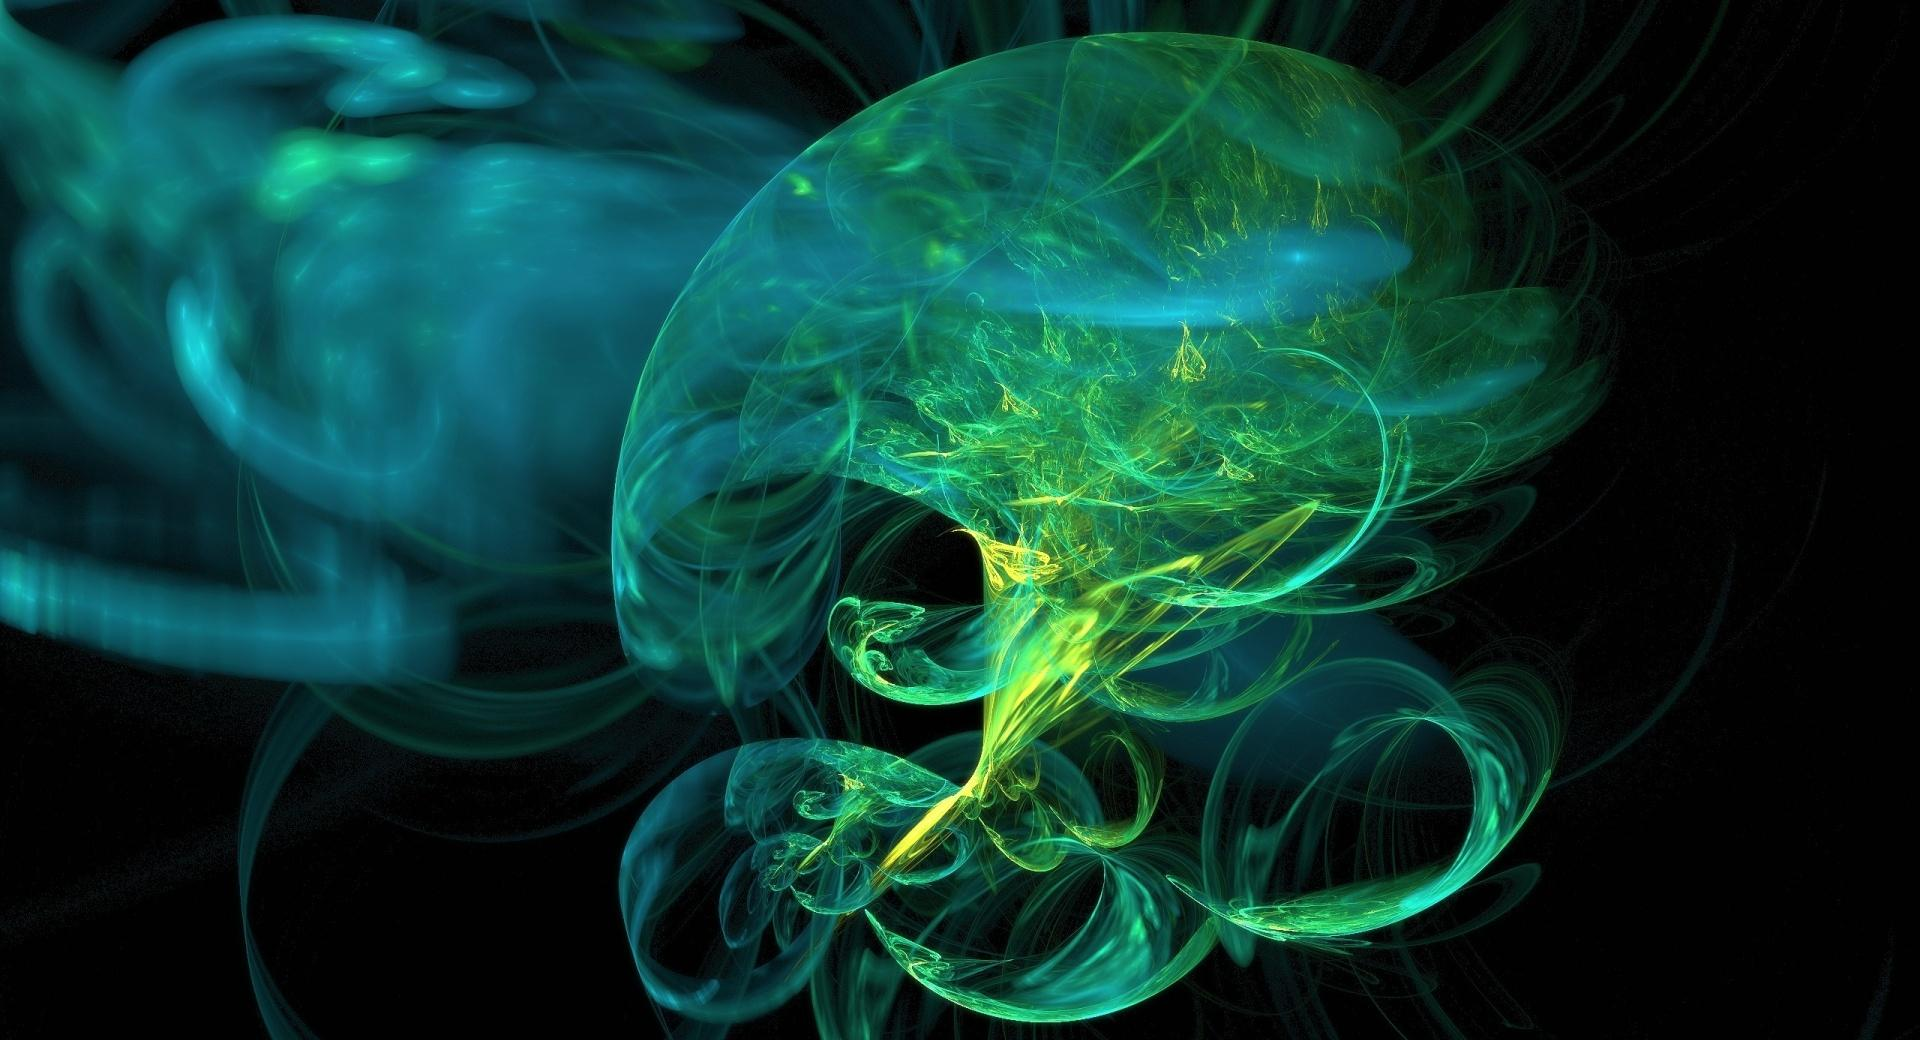 Abstract Green Smoke wallpapers HD quality